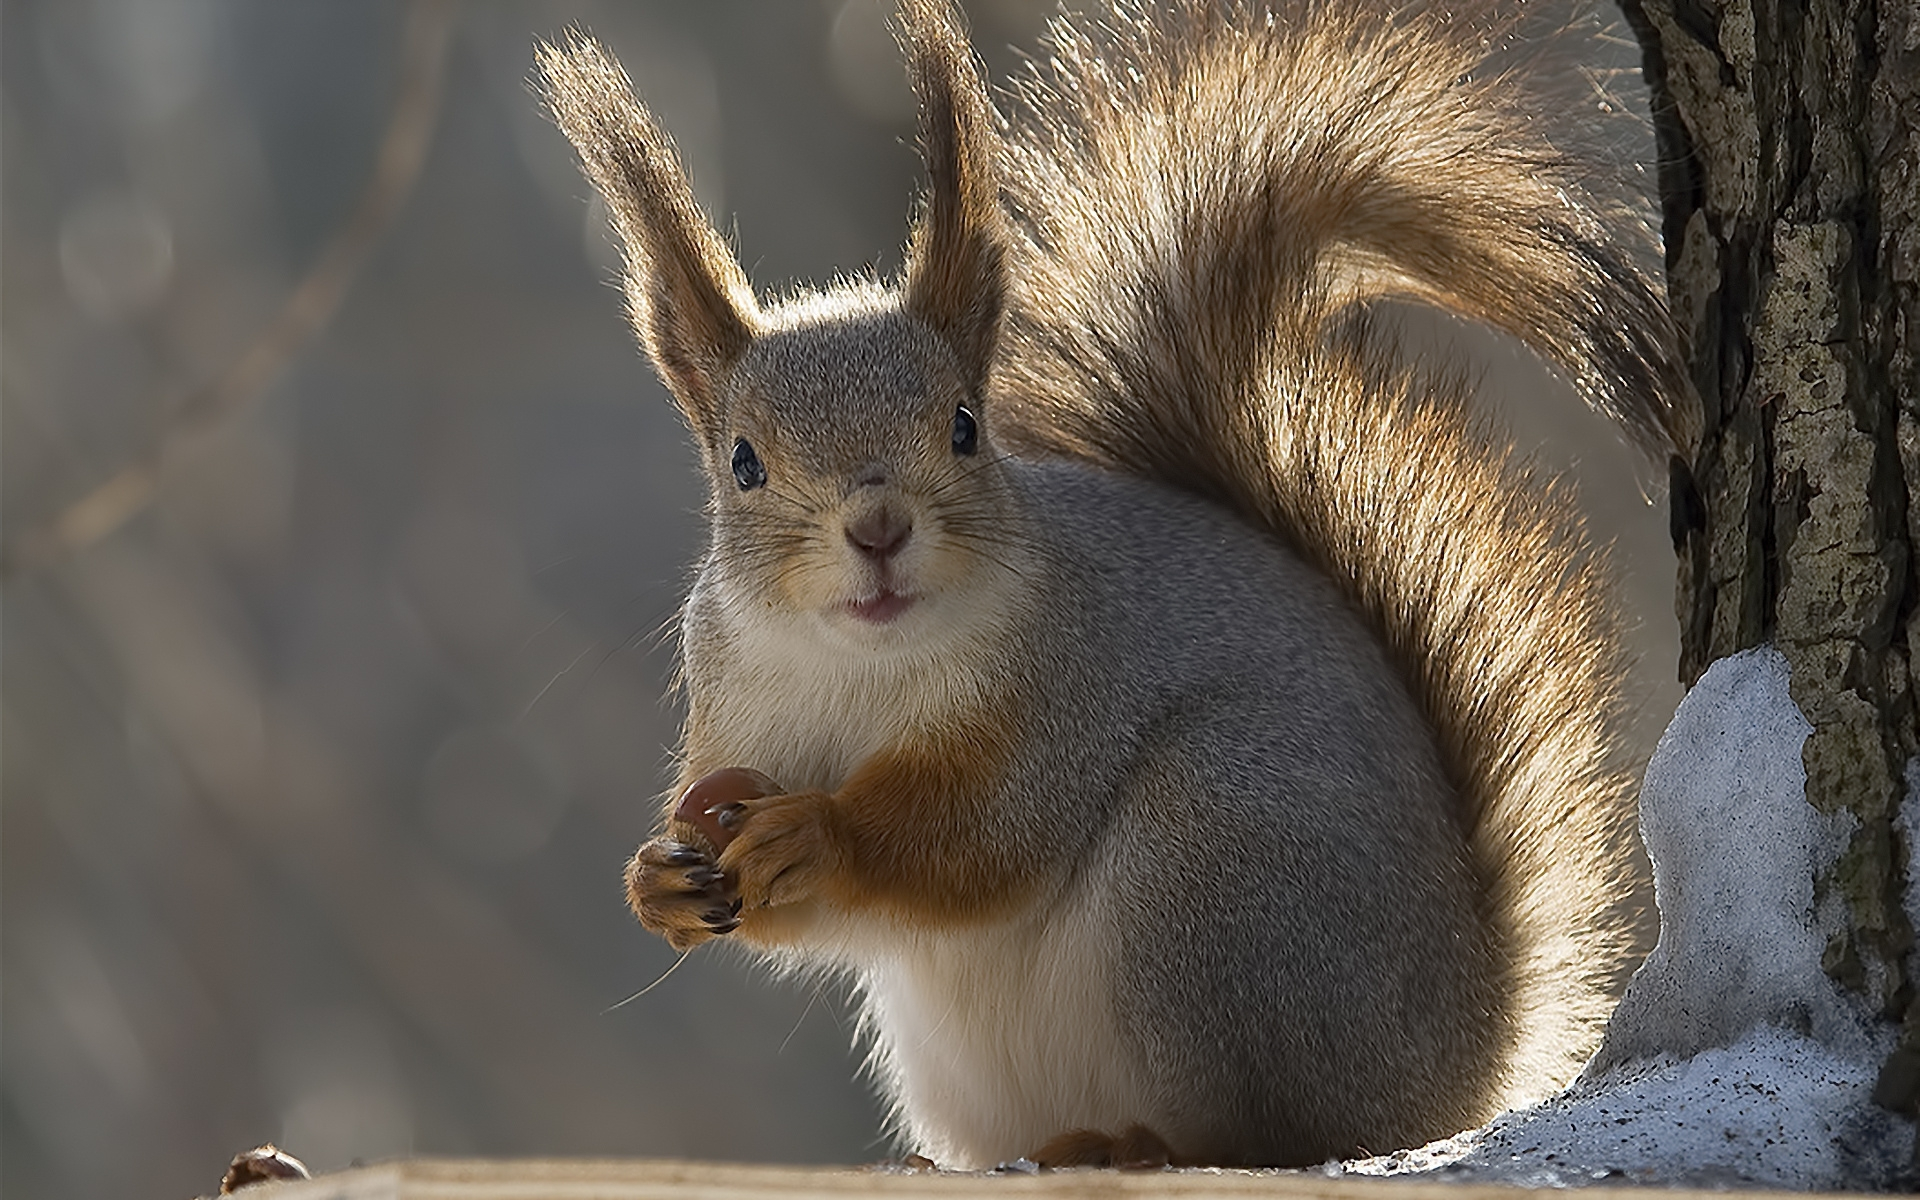 37121 download wallpaper Animals, Squirrel screensavers and pictures for free